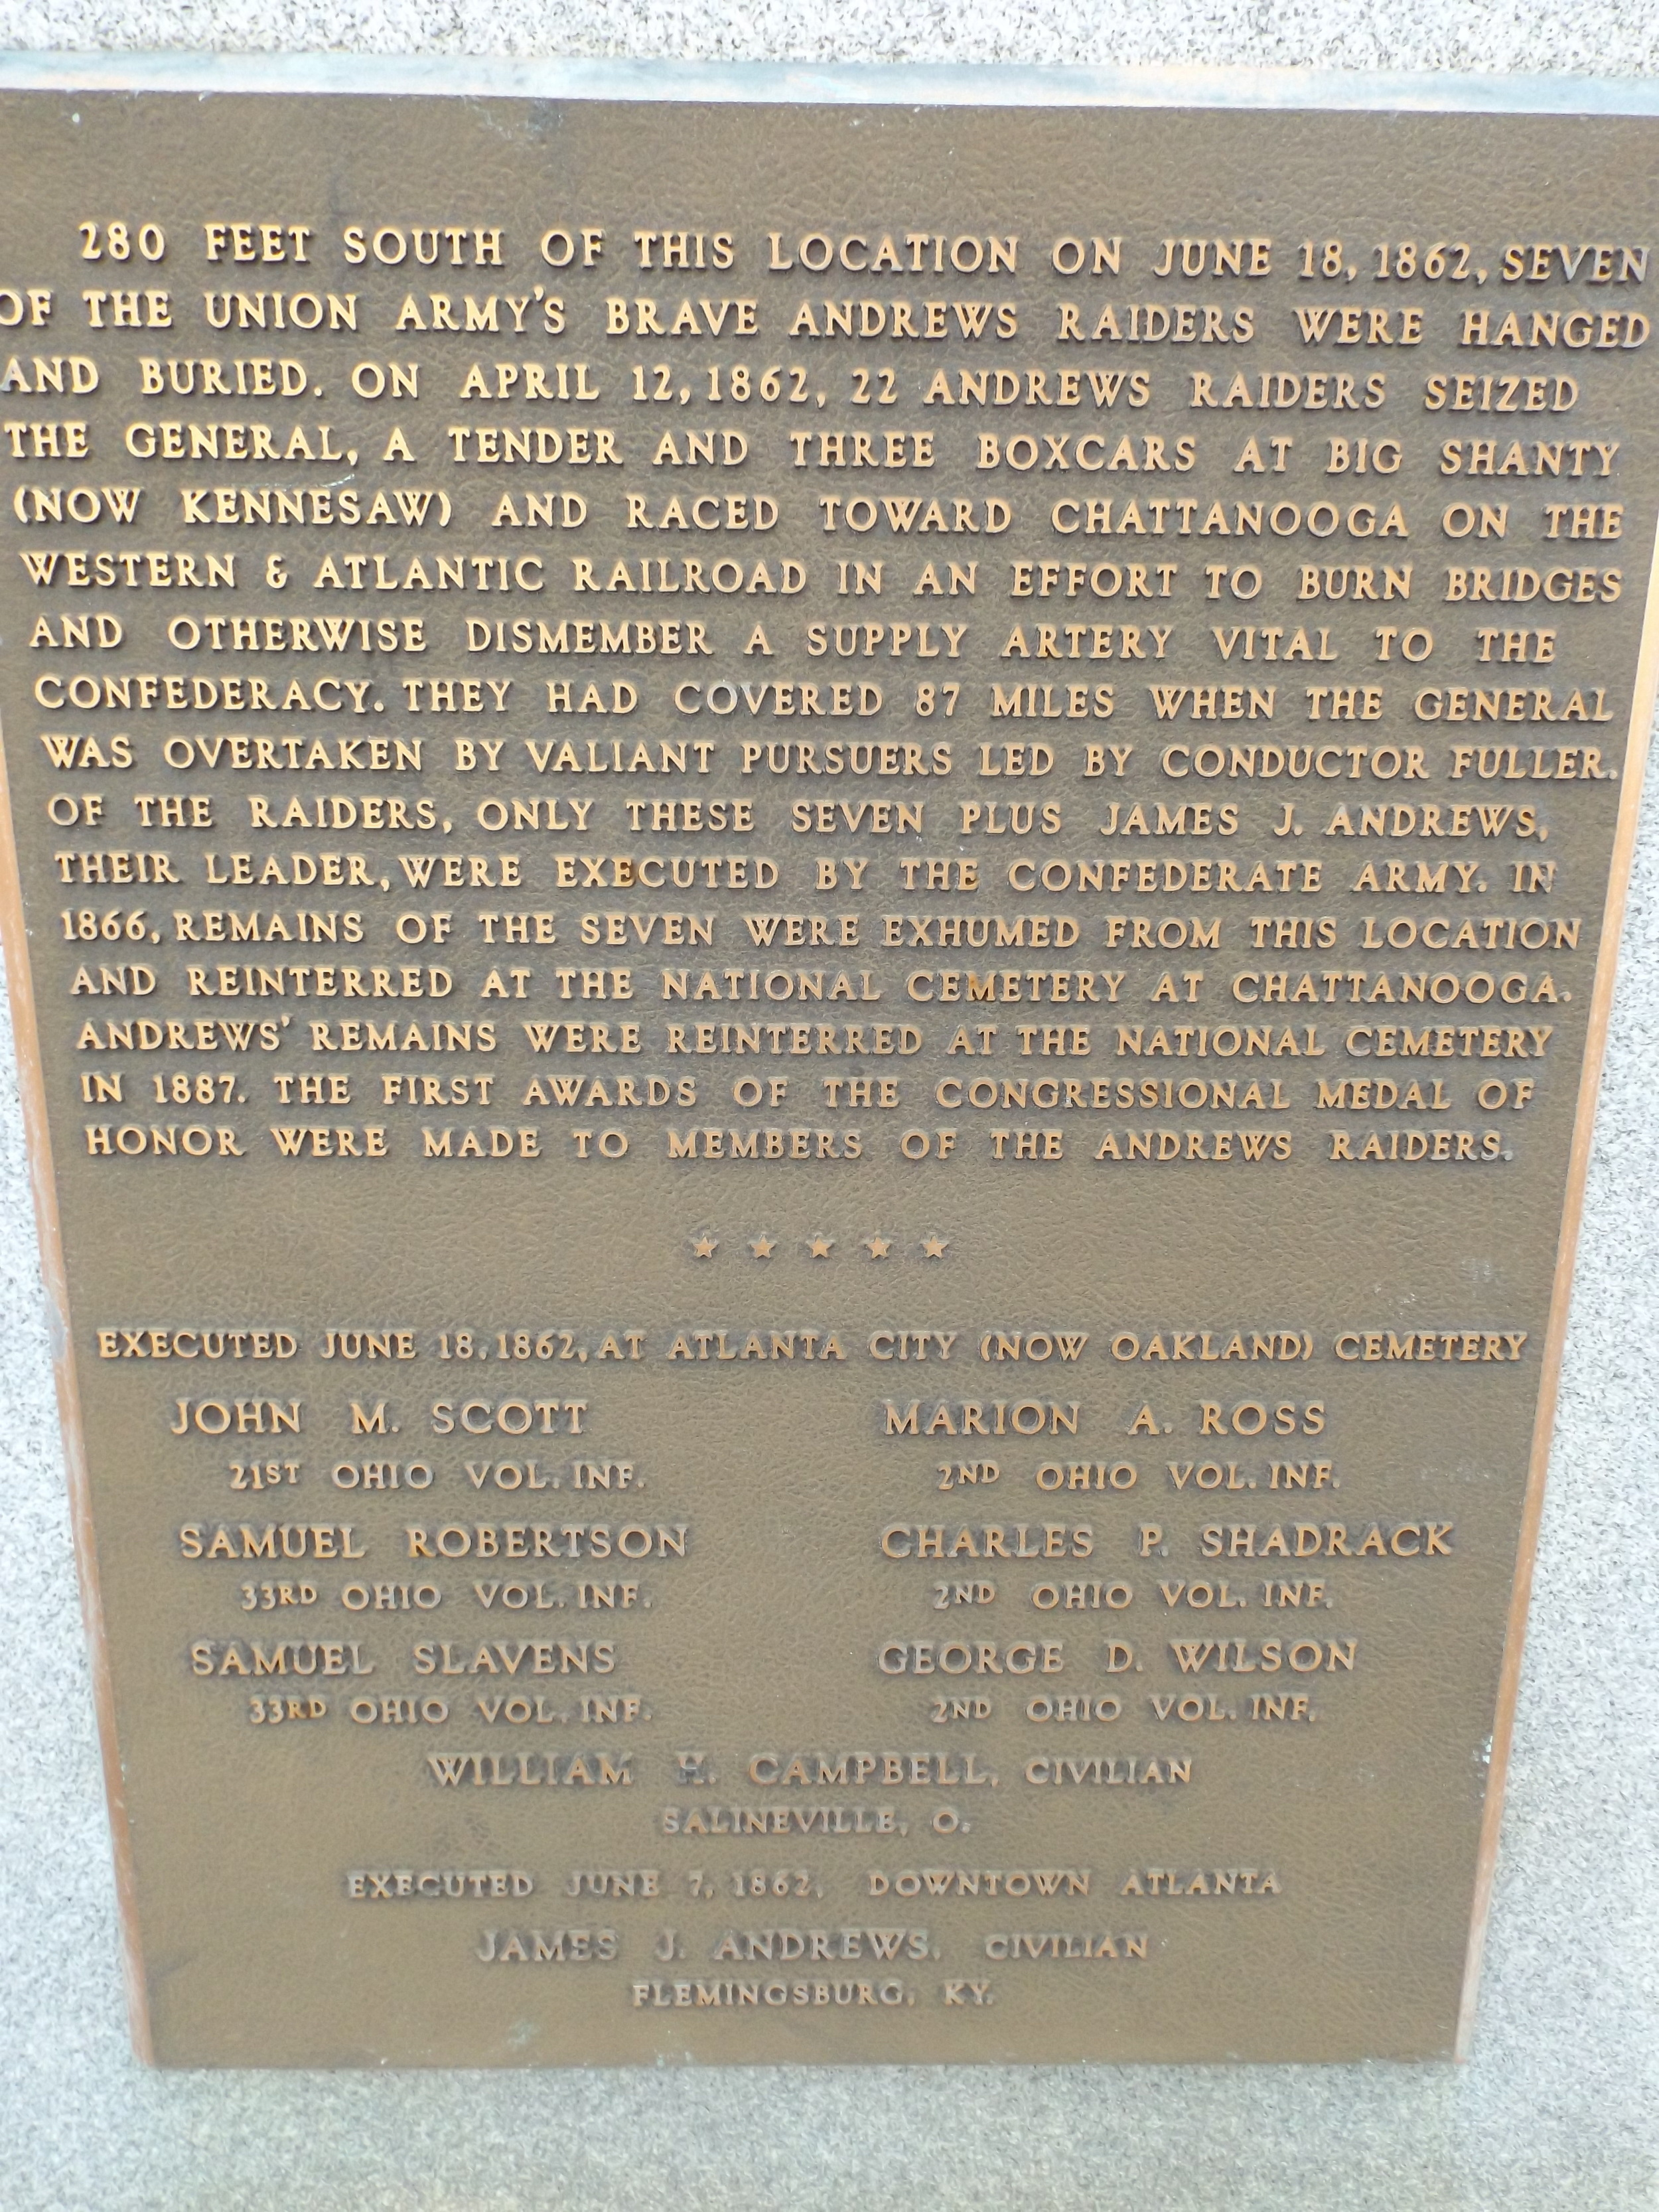 Close-up on the plaque of the Oakland Cemetery monument.